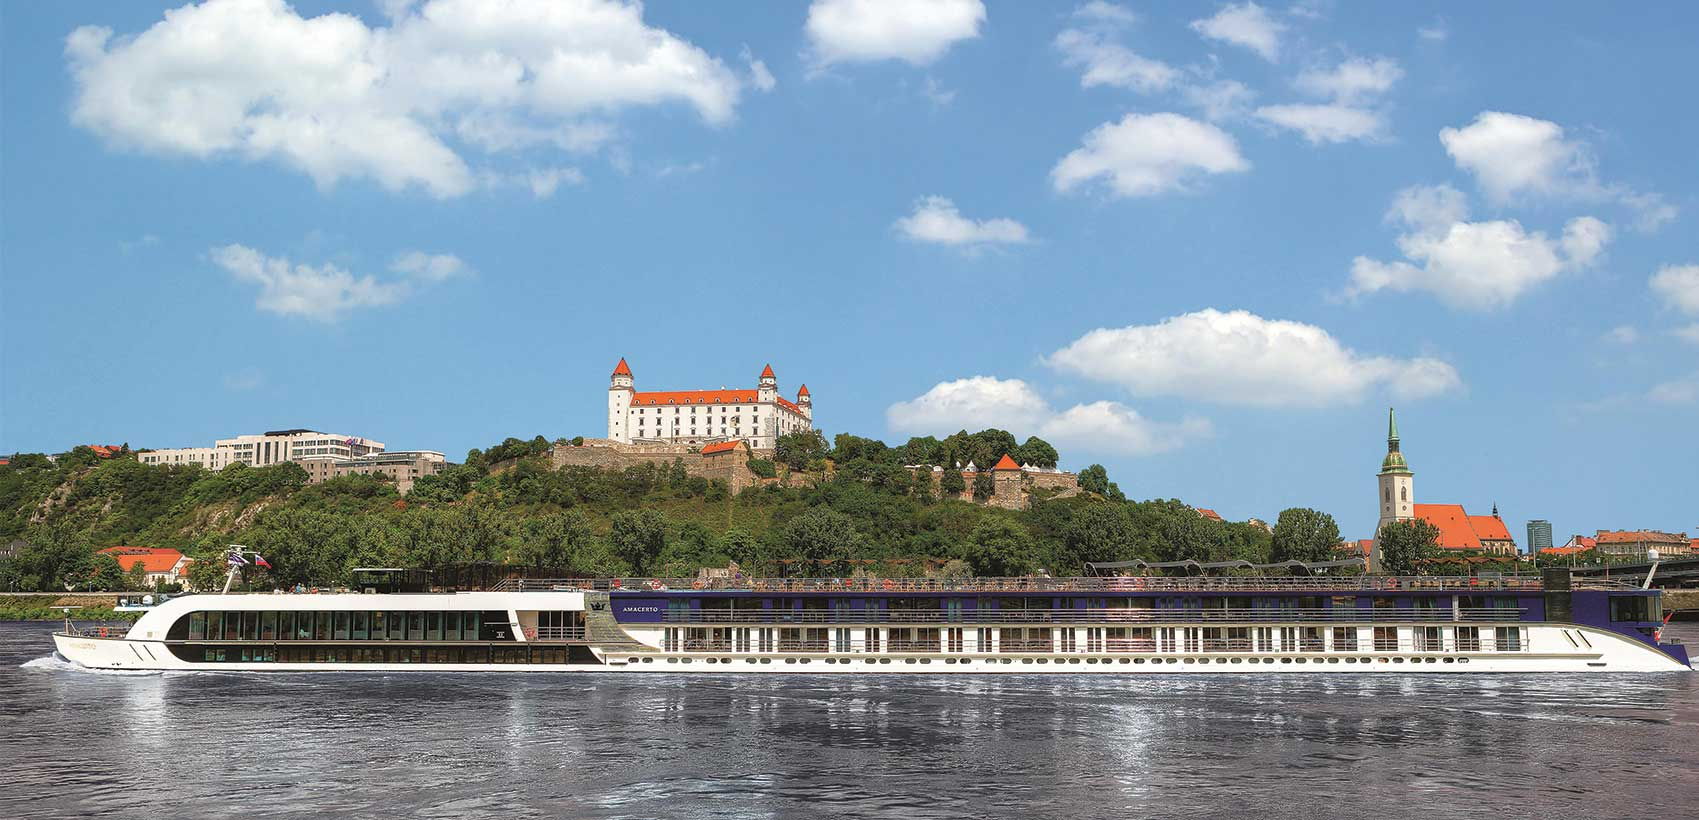 AmaWaterways Active River Cruise Savings